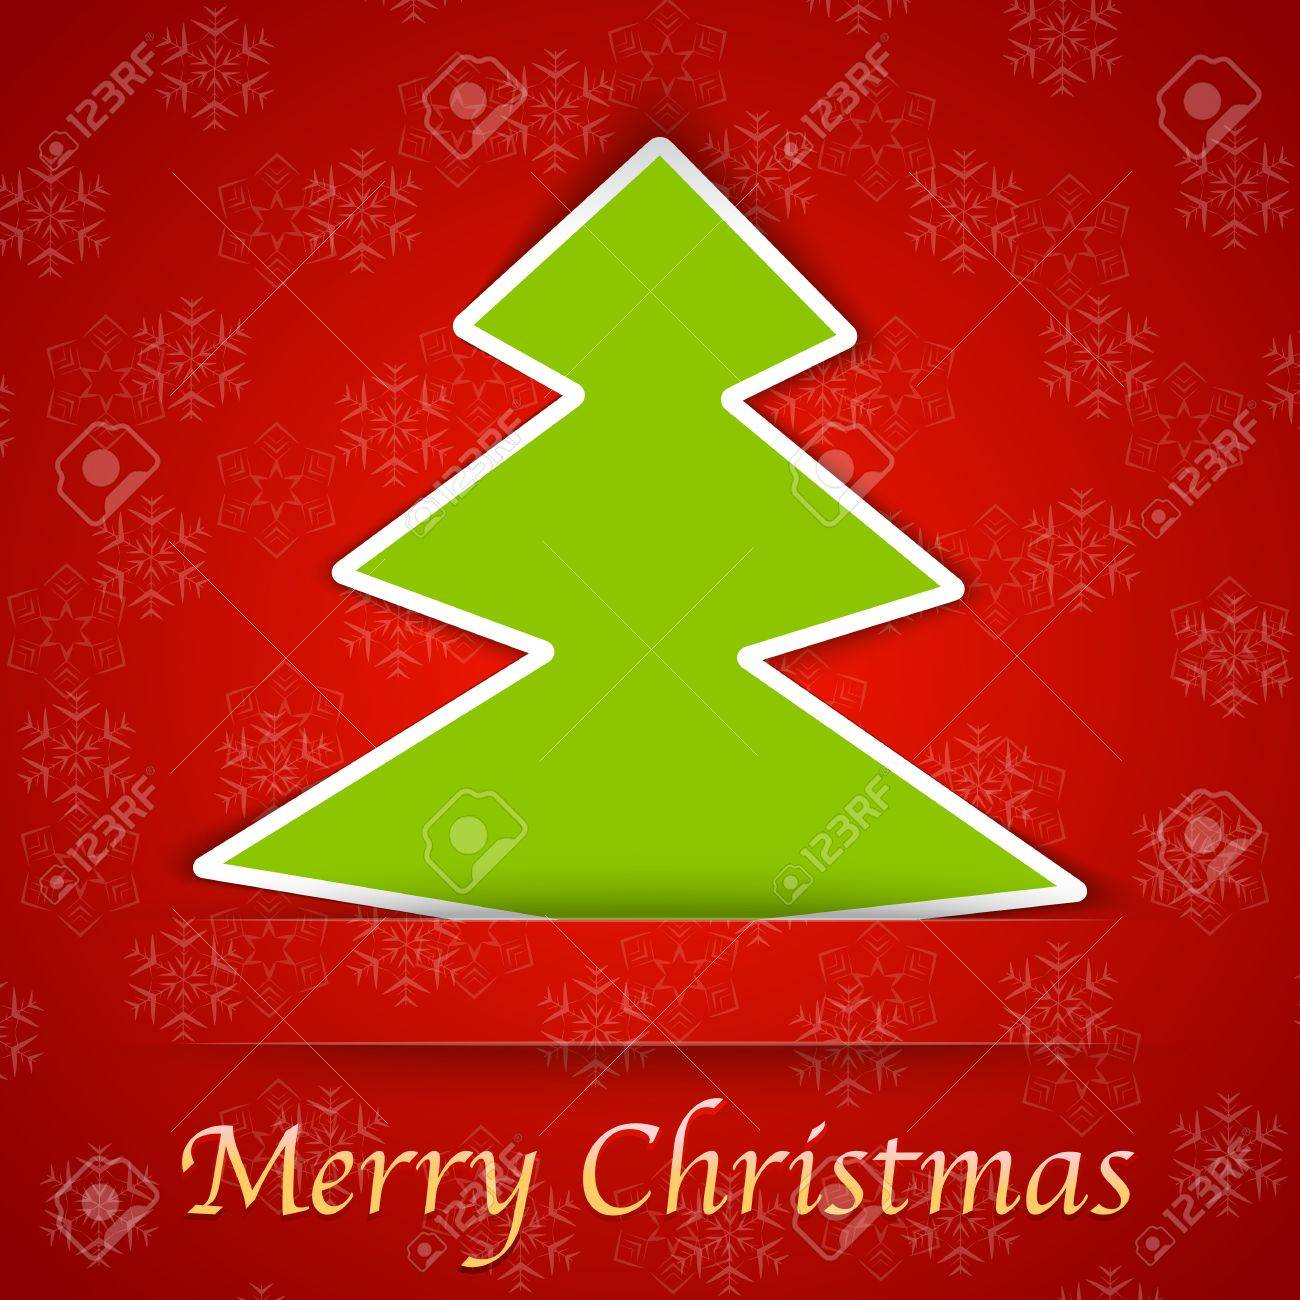 Merry Christmas Gift Card With A Simple Christmas Tree Placed ...